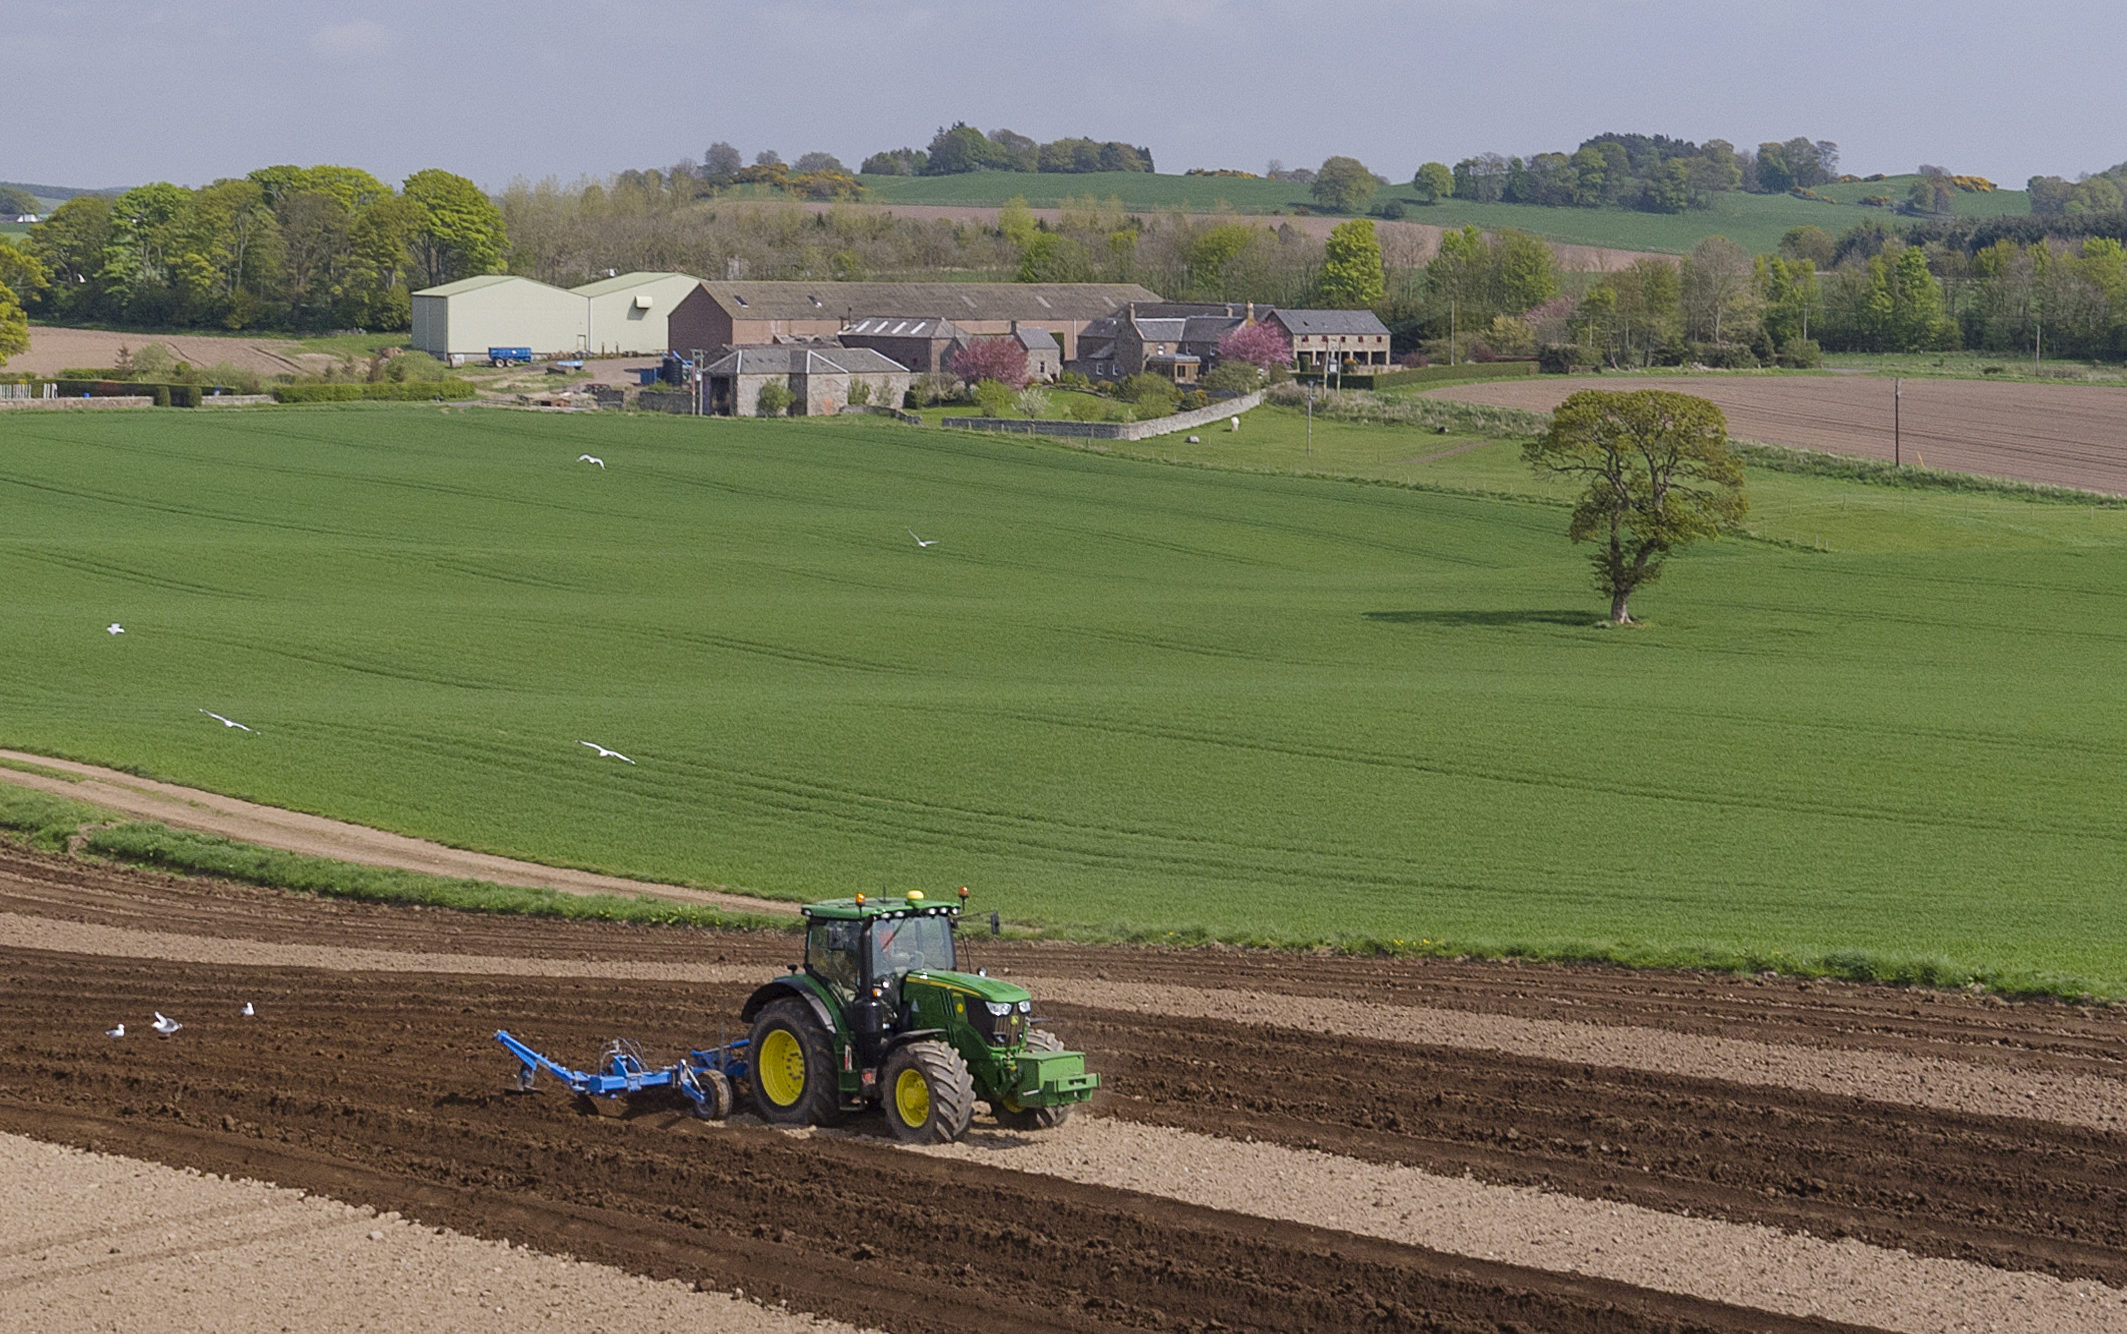 Only 21,000 acres of farmland were marketed publicly in Scotland in the first nine months of 2019